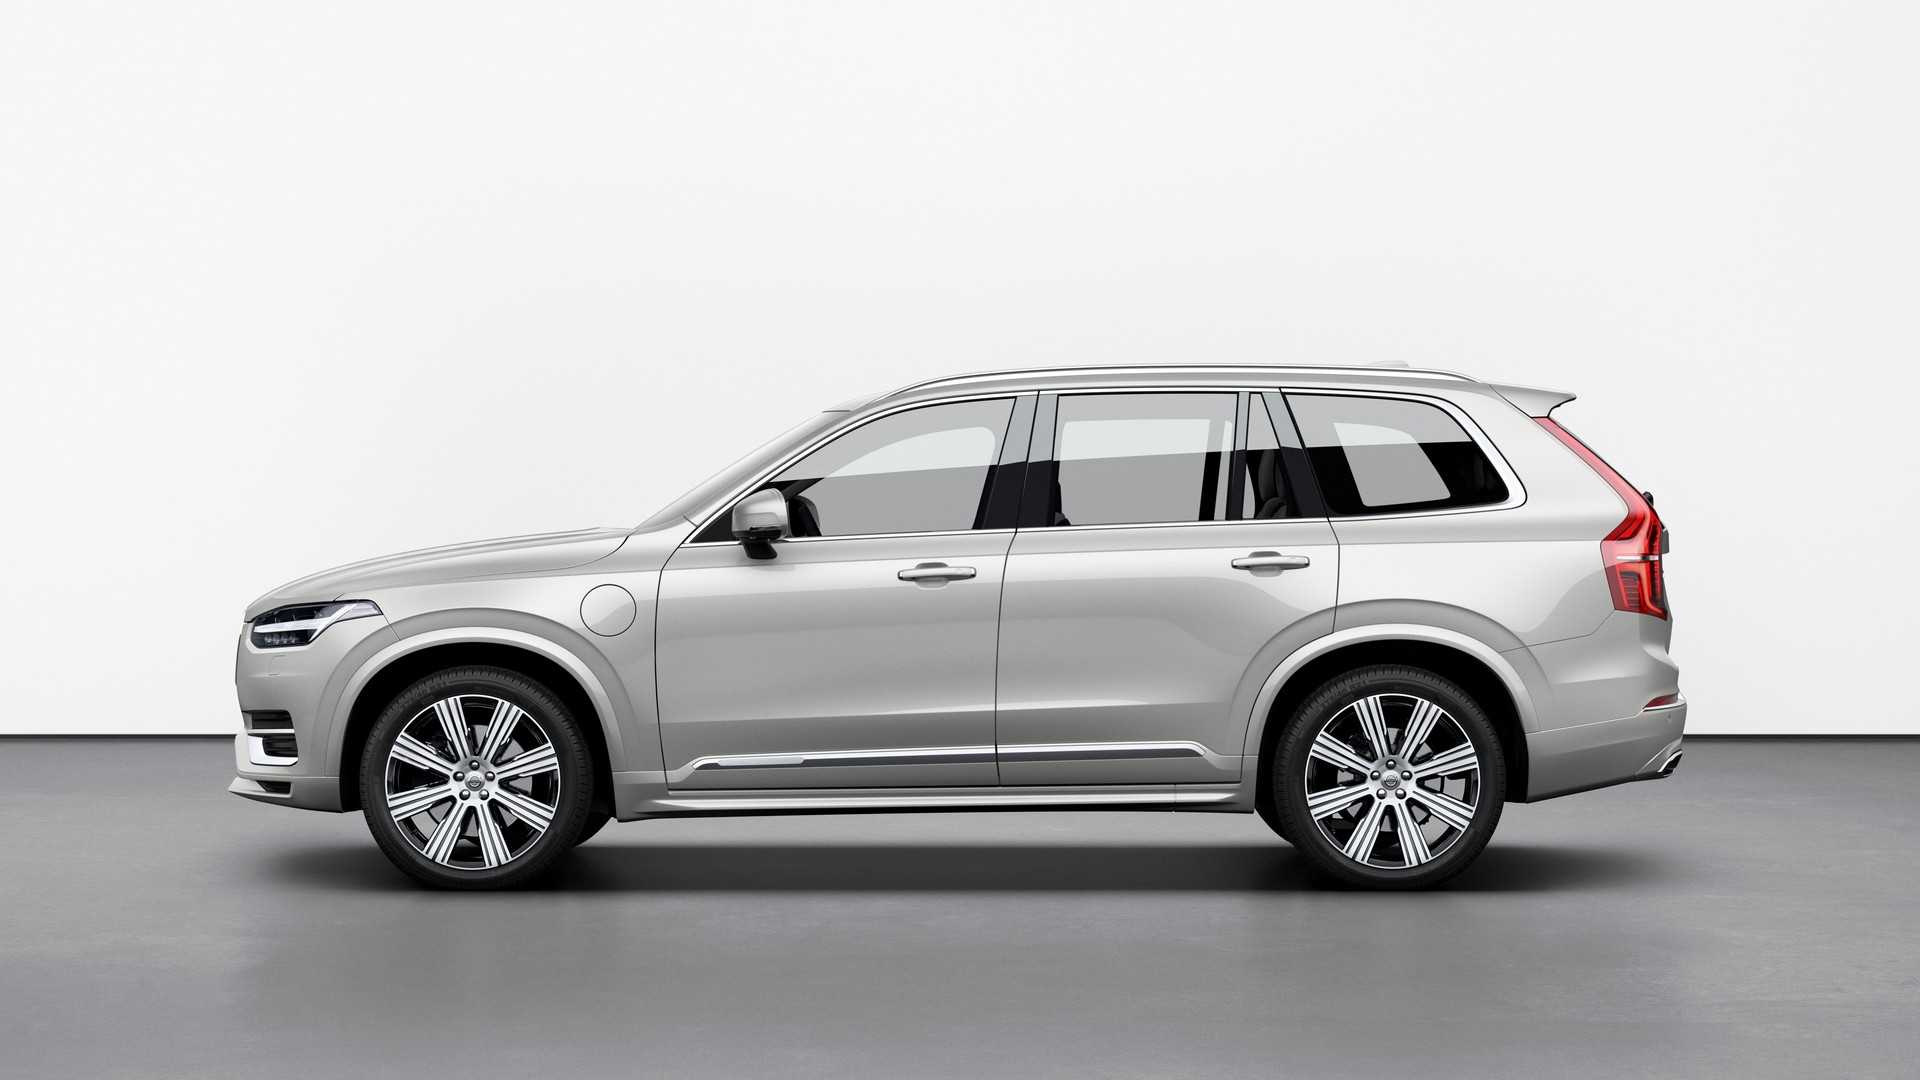 86 The All New Volvo Xc90 2020 Release Date for All New Volvo Xc90 2020